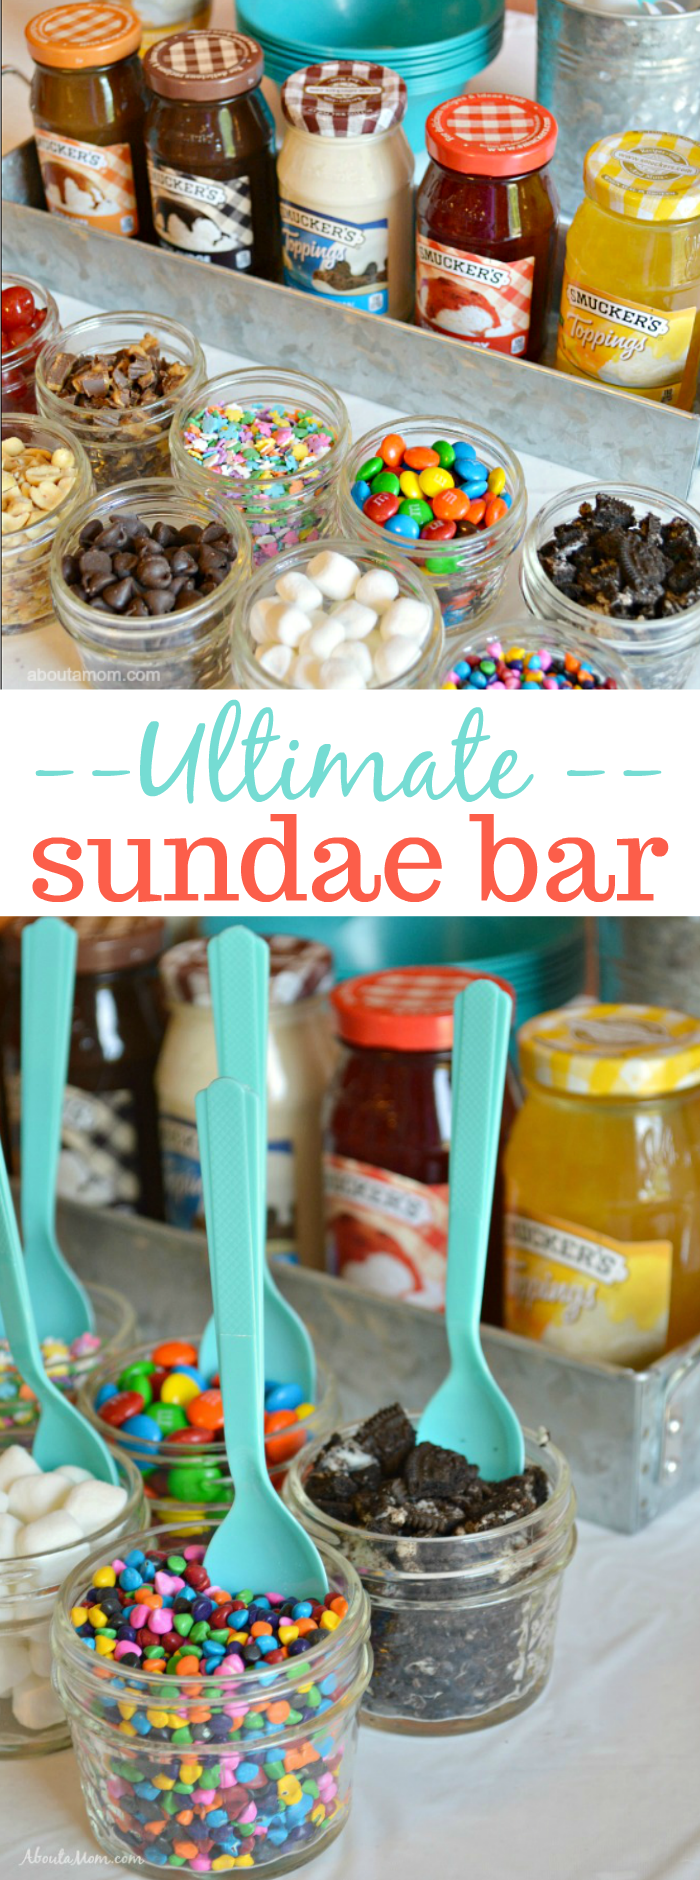 Build Your Own Sundae Bar - The Ultimate Summer Party